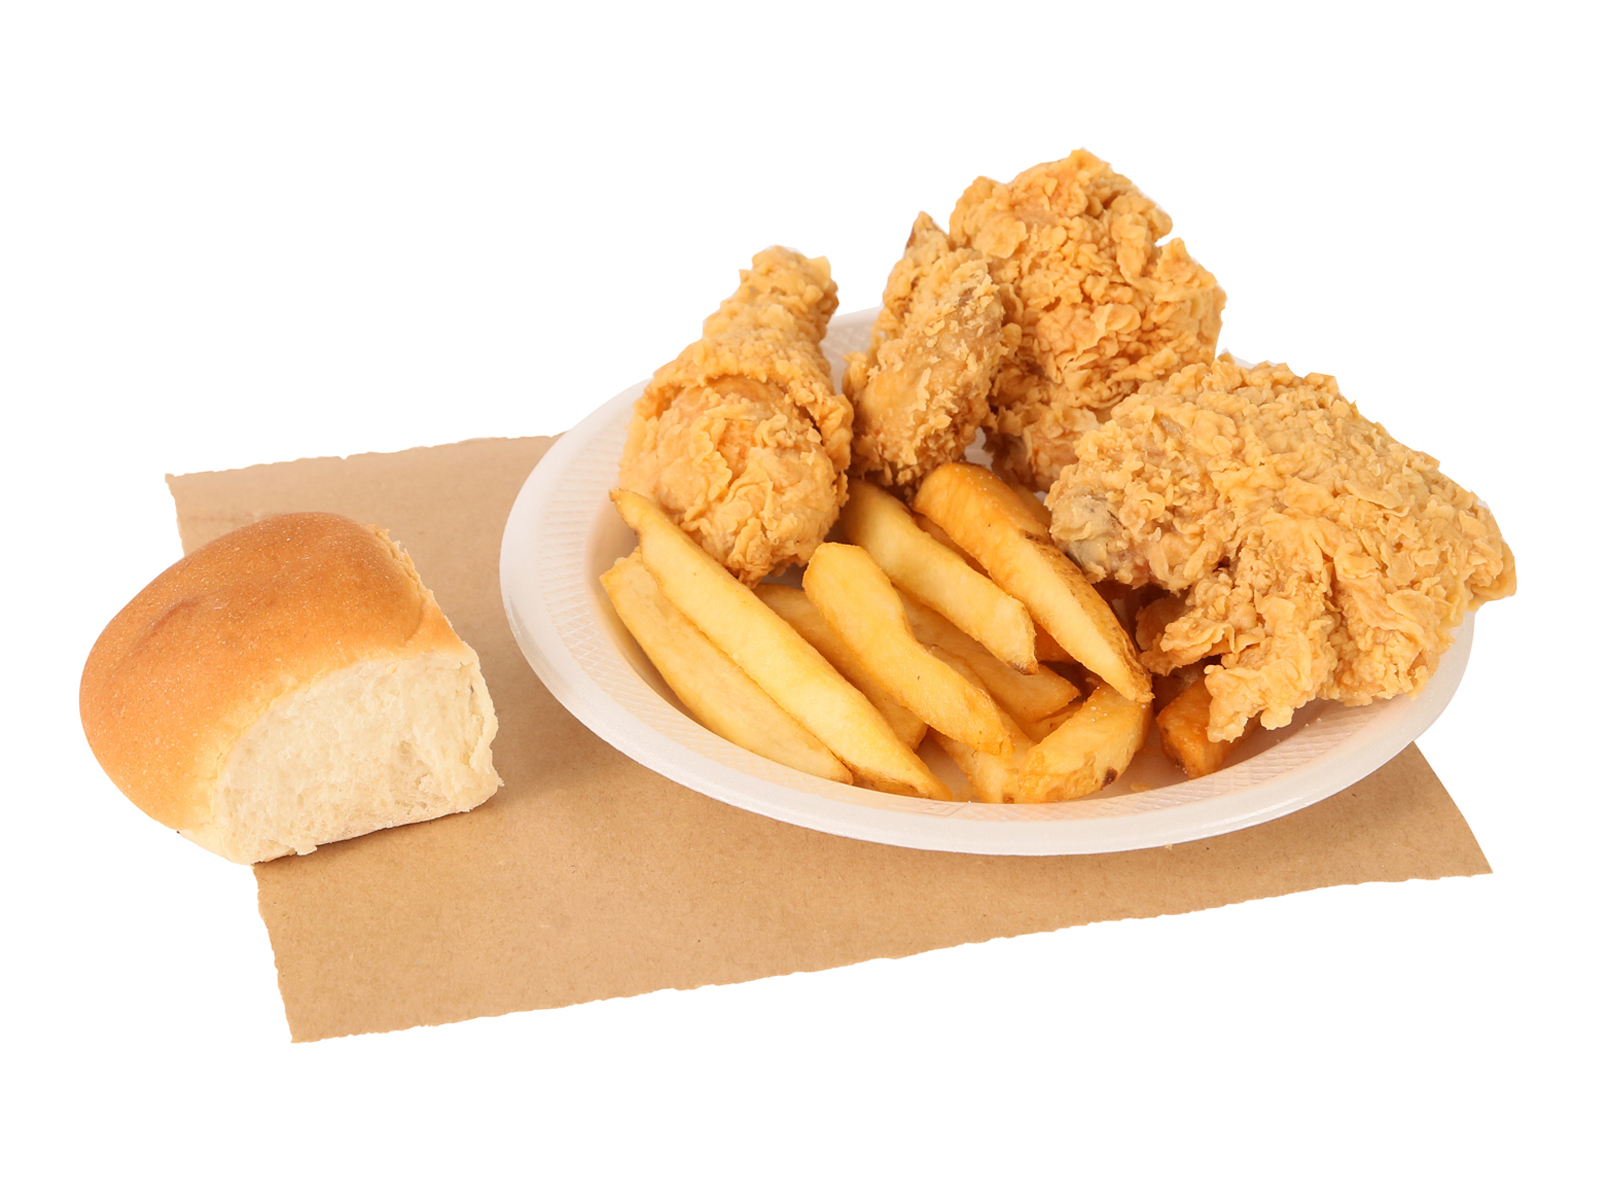 3 PC. Fried Chicken our choice served with french fries & dinner roll